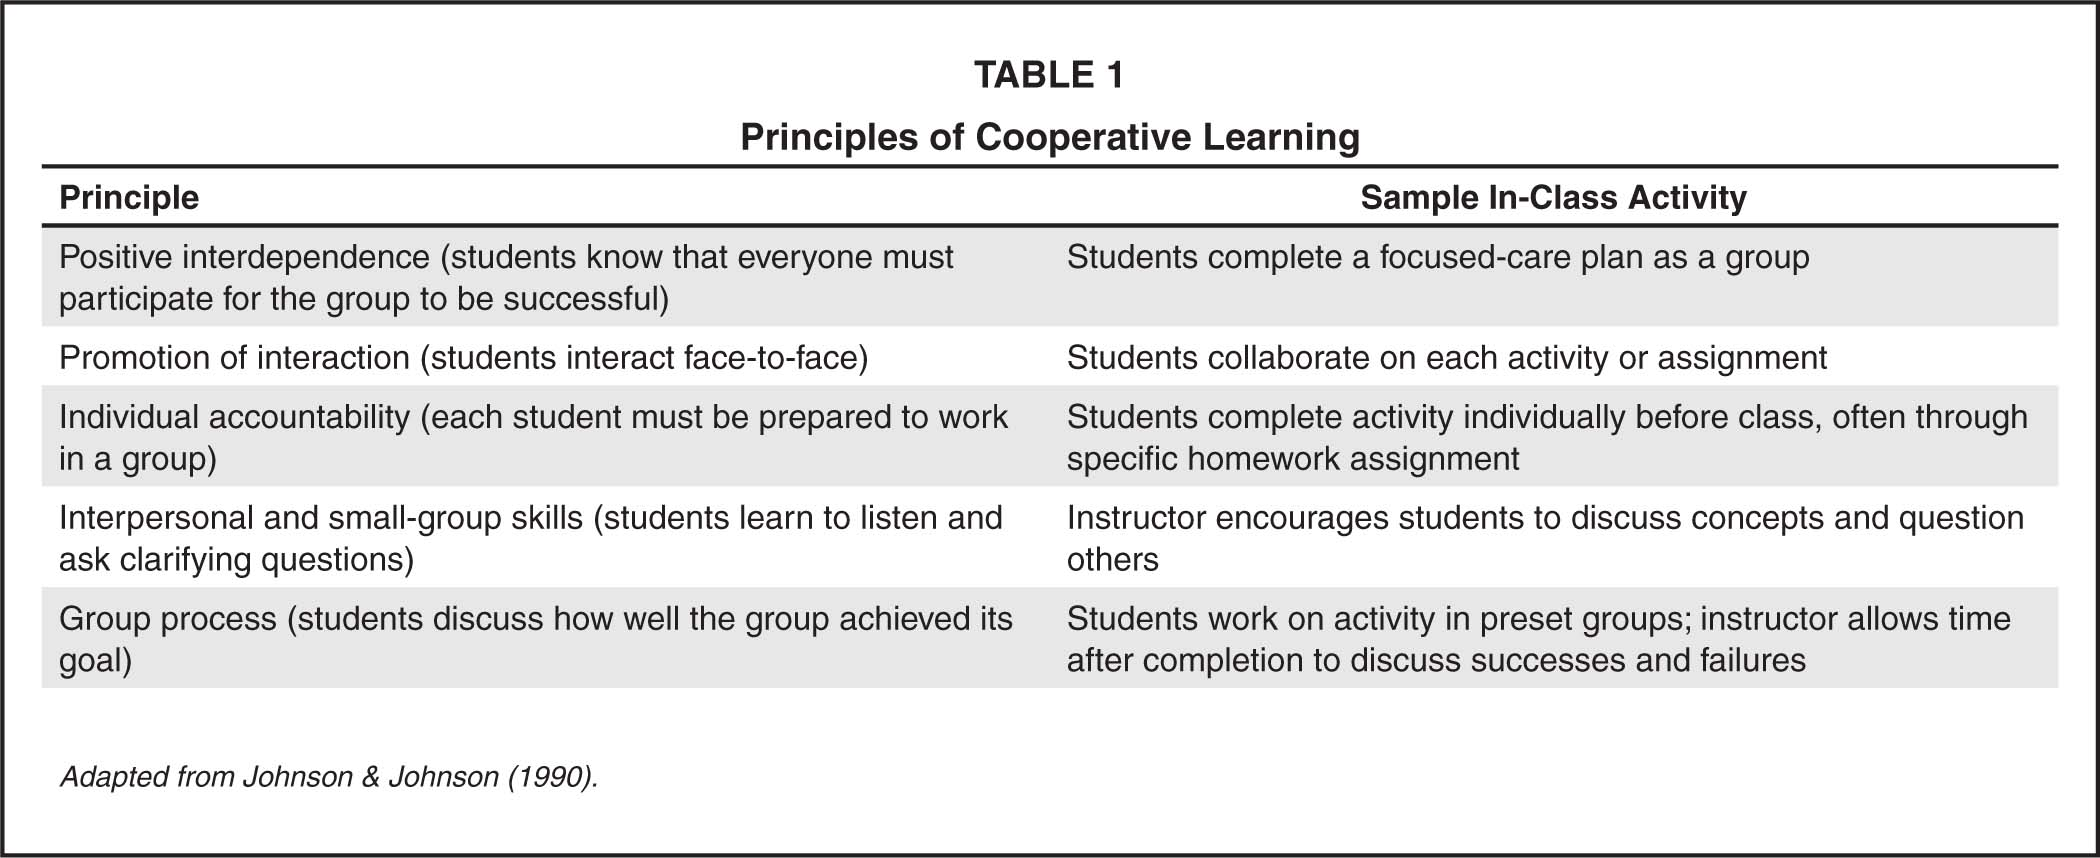 Principles of Cooperative Learning